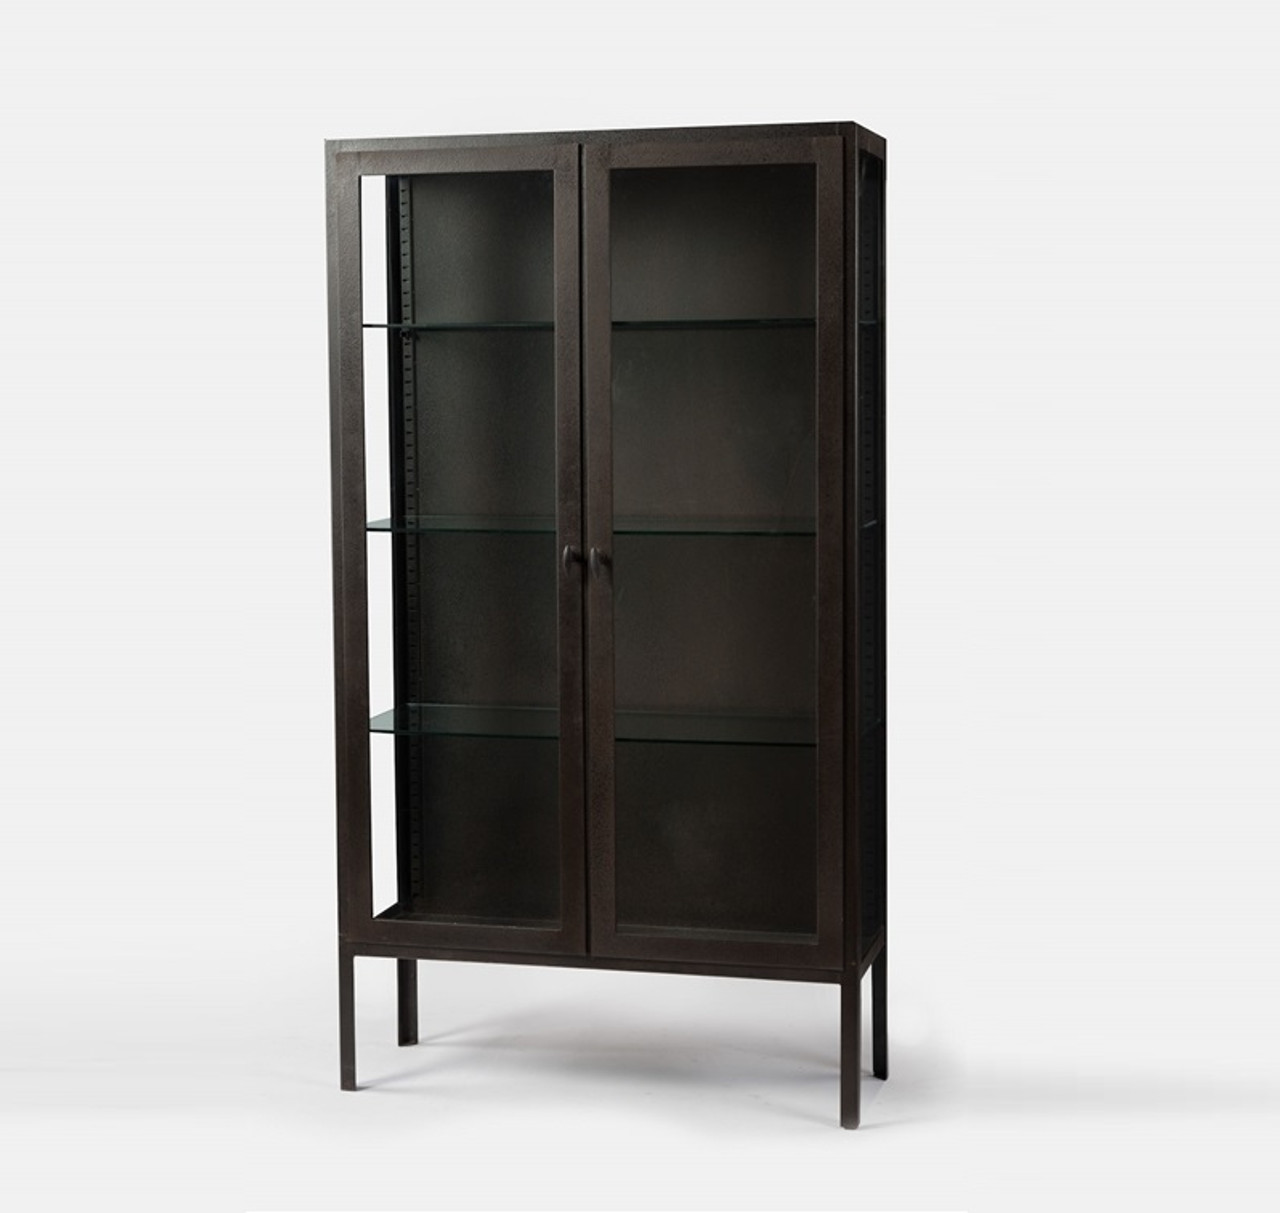 Bon Trenton Aged Black Metal Display Cabinet